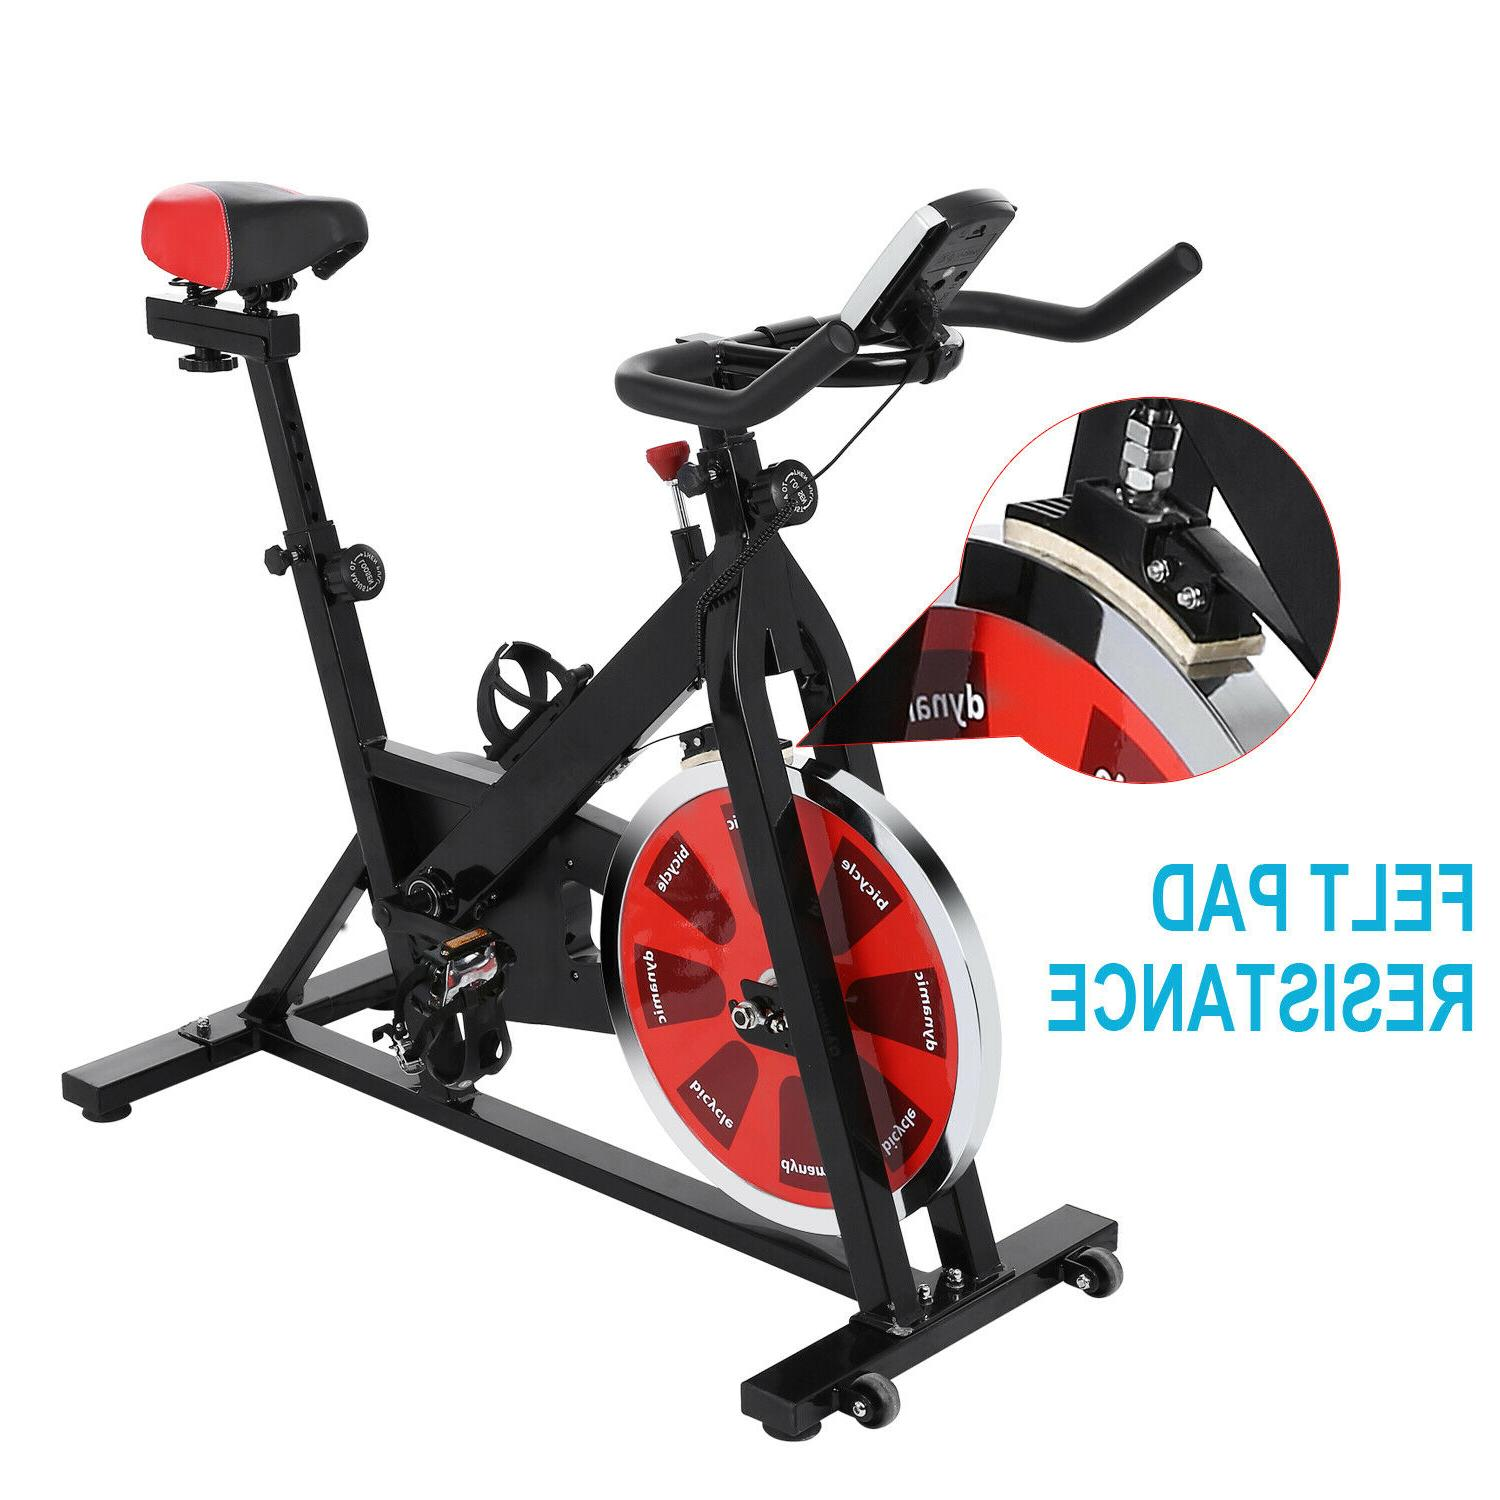 Foldable Stationary Upright Exercise Workout Cycling